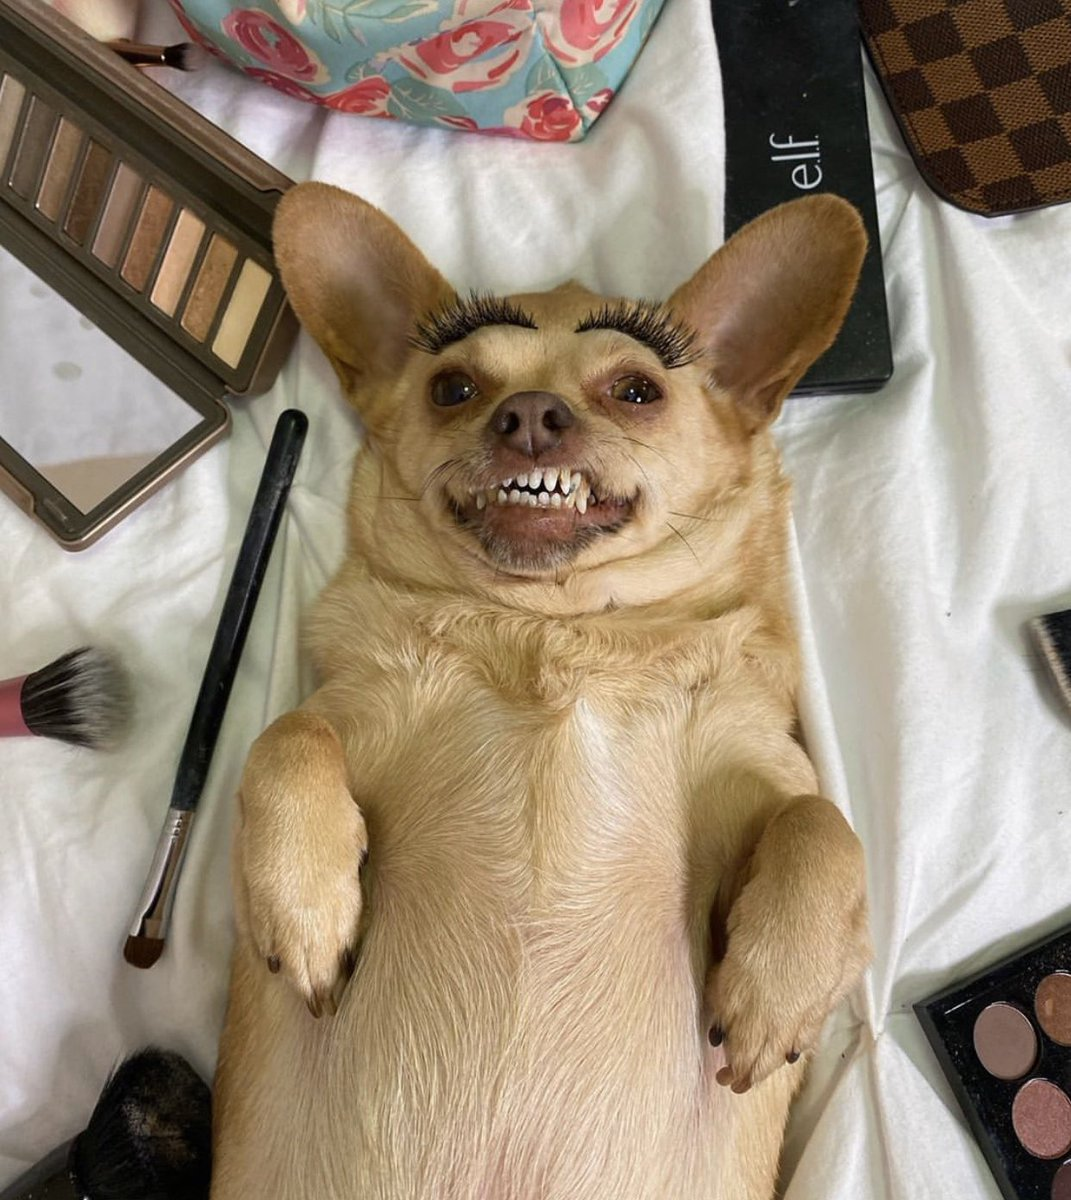 When you get back from Ulta Beauty and can't wait to try on all your new makeup 🥰